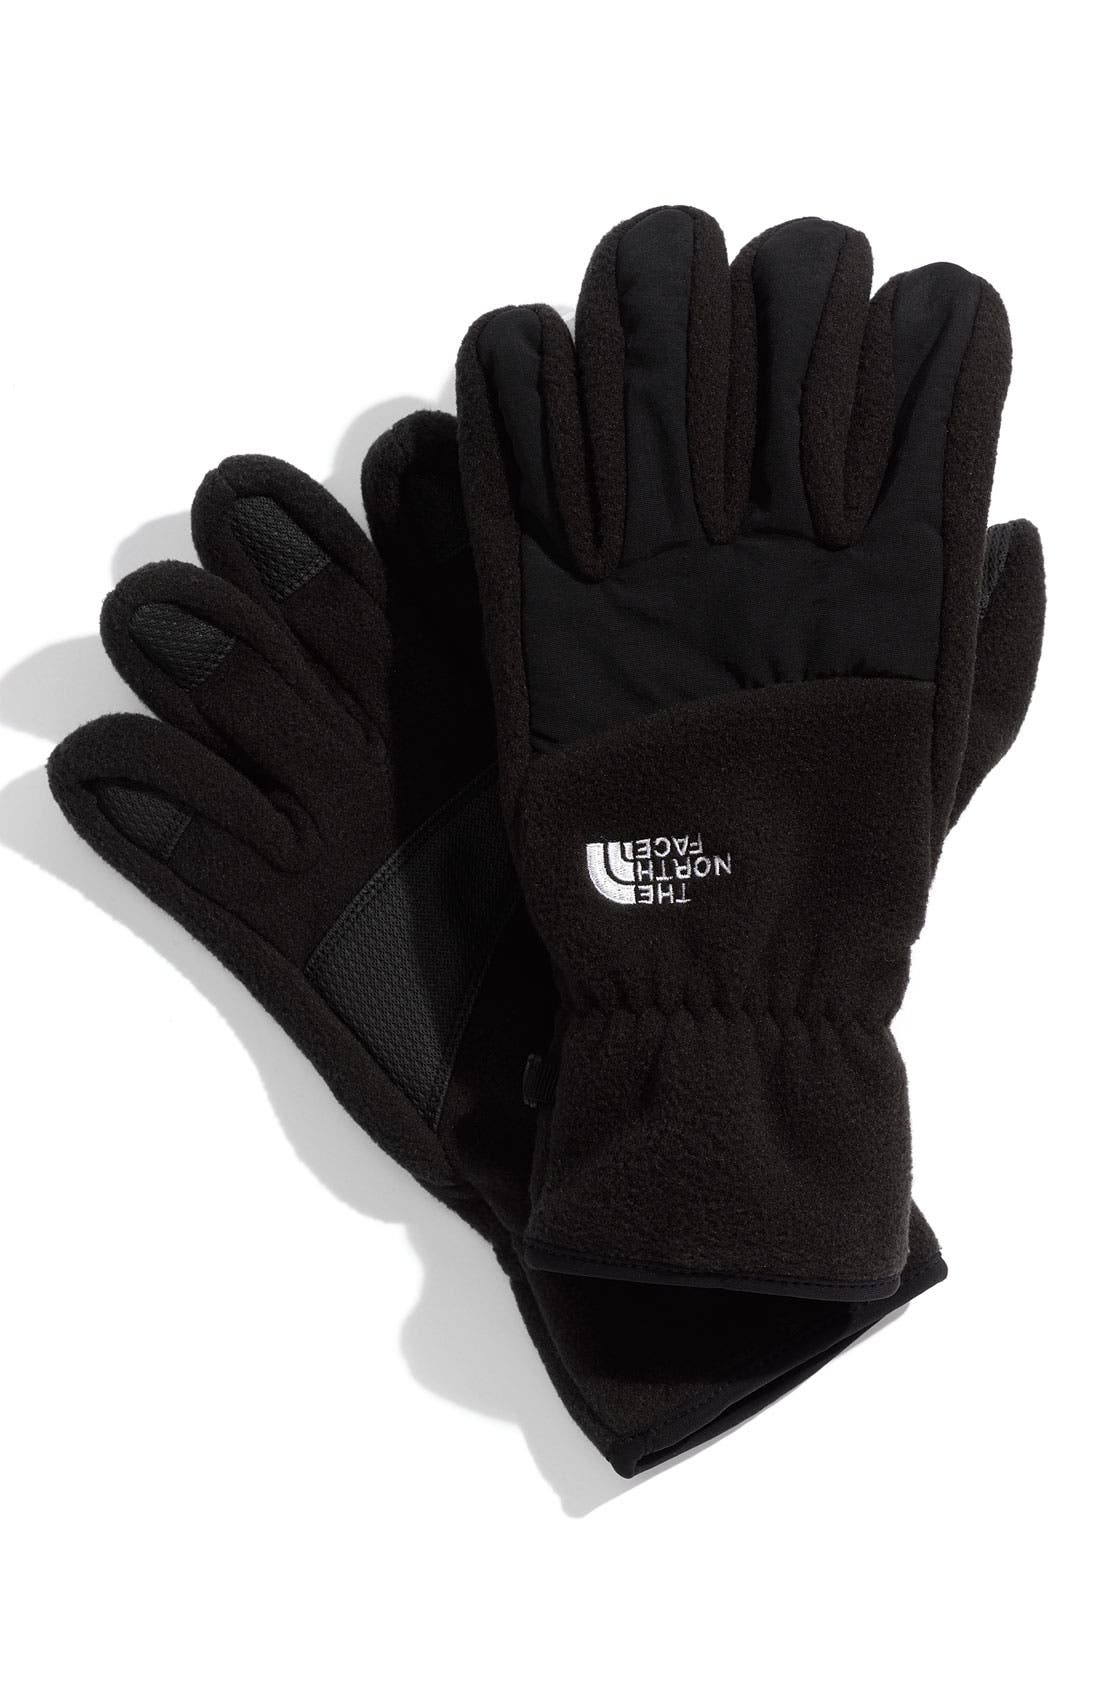 Alternate Image 1 Selected - The North Face 'Denali' Fleece Gloves (Men)